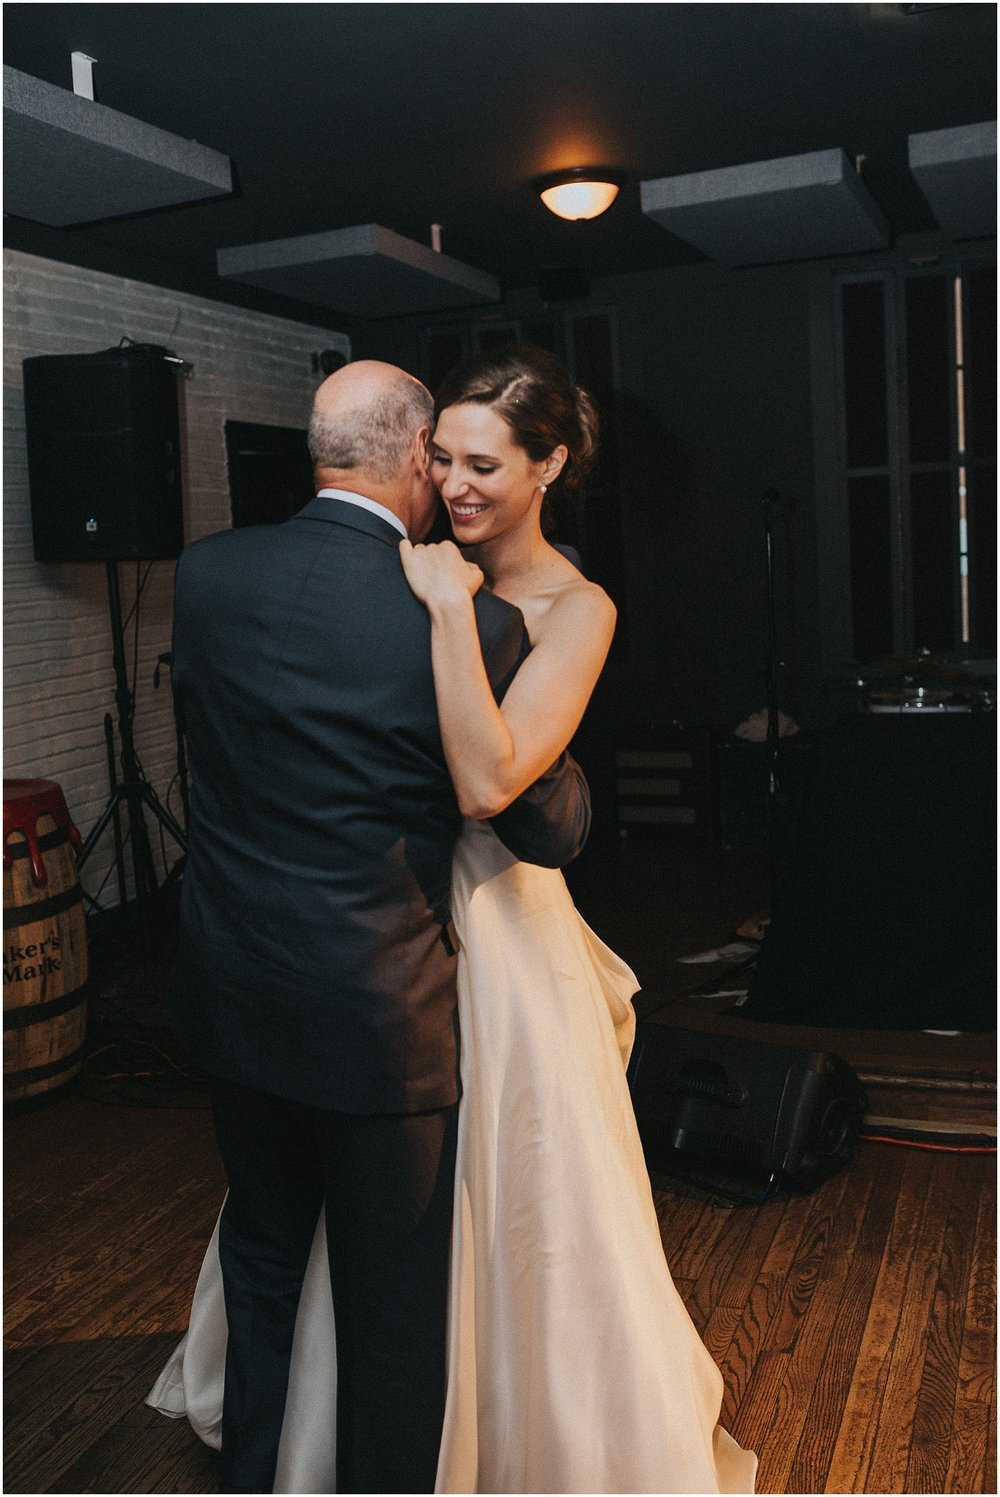 Father Daughter dance at wedding reception in the Twisted Tail Restaurant near Penns Landing in Philadelphia Pennsylvania